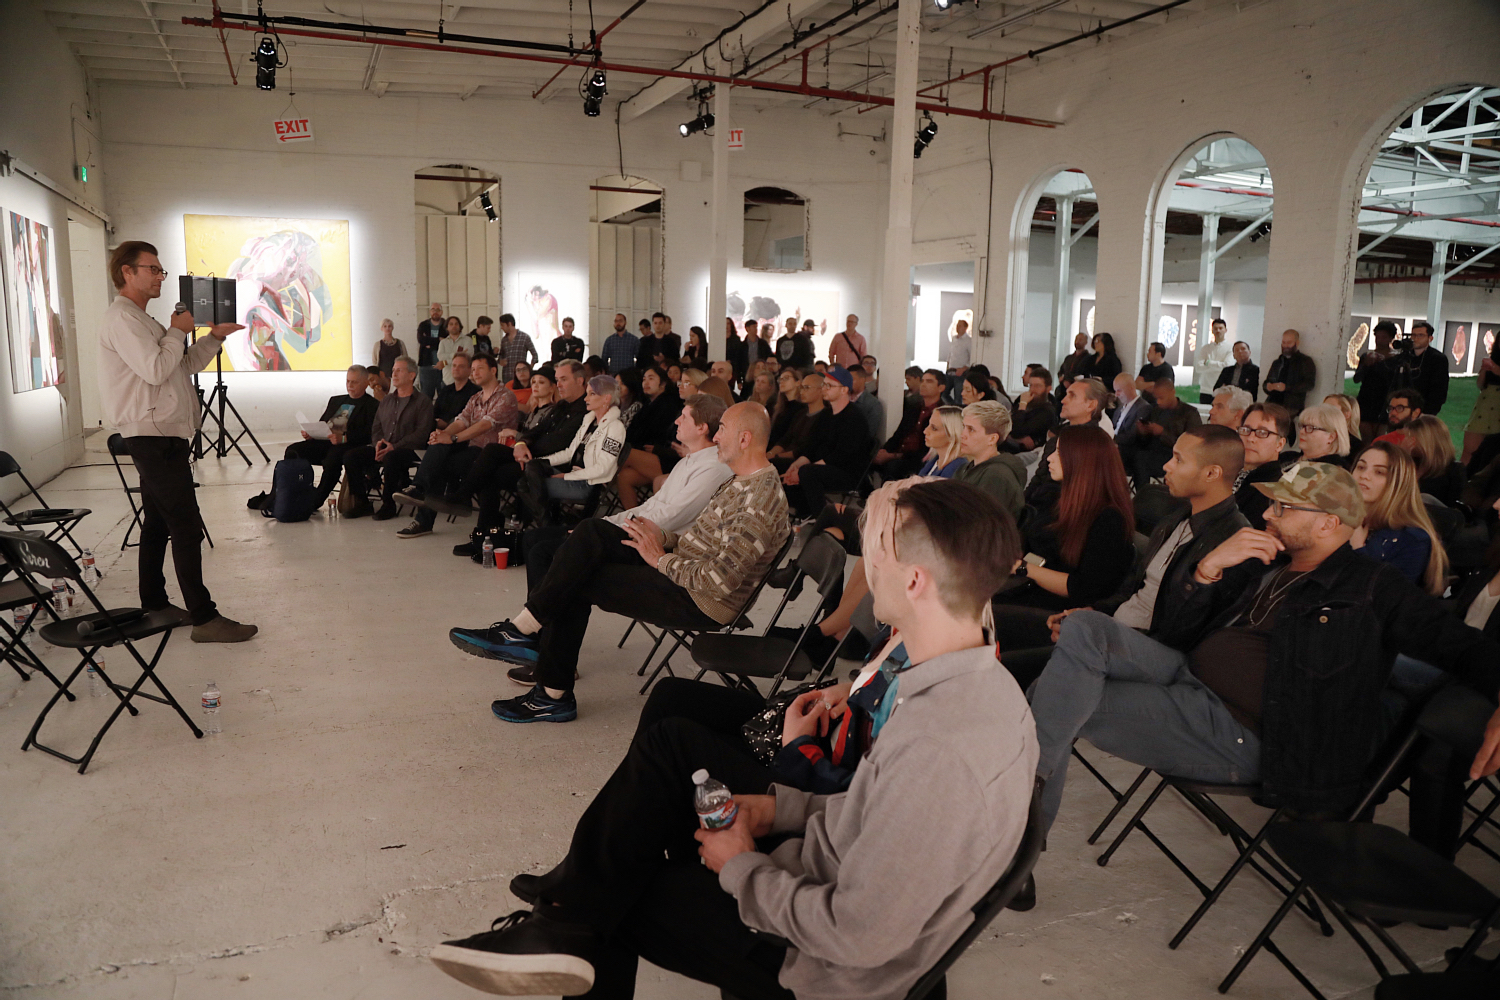 14th Factory founder and artist Simon Birch kicks off the at-capacity Collisions salon.